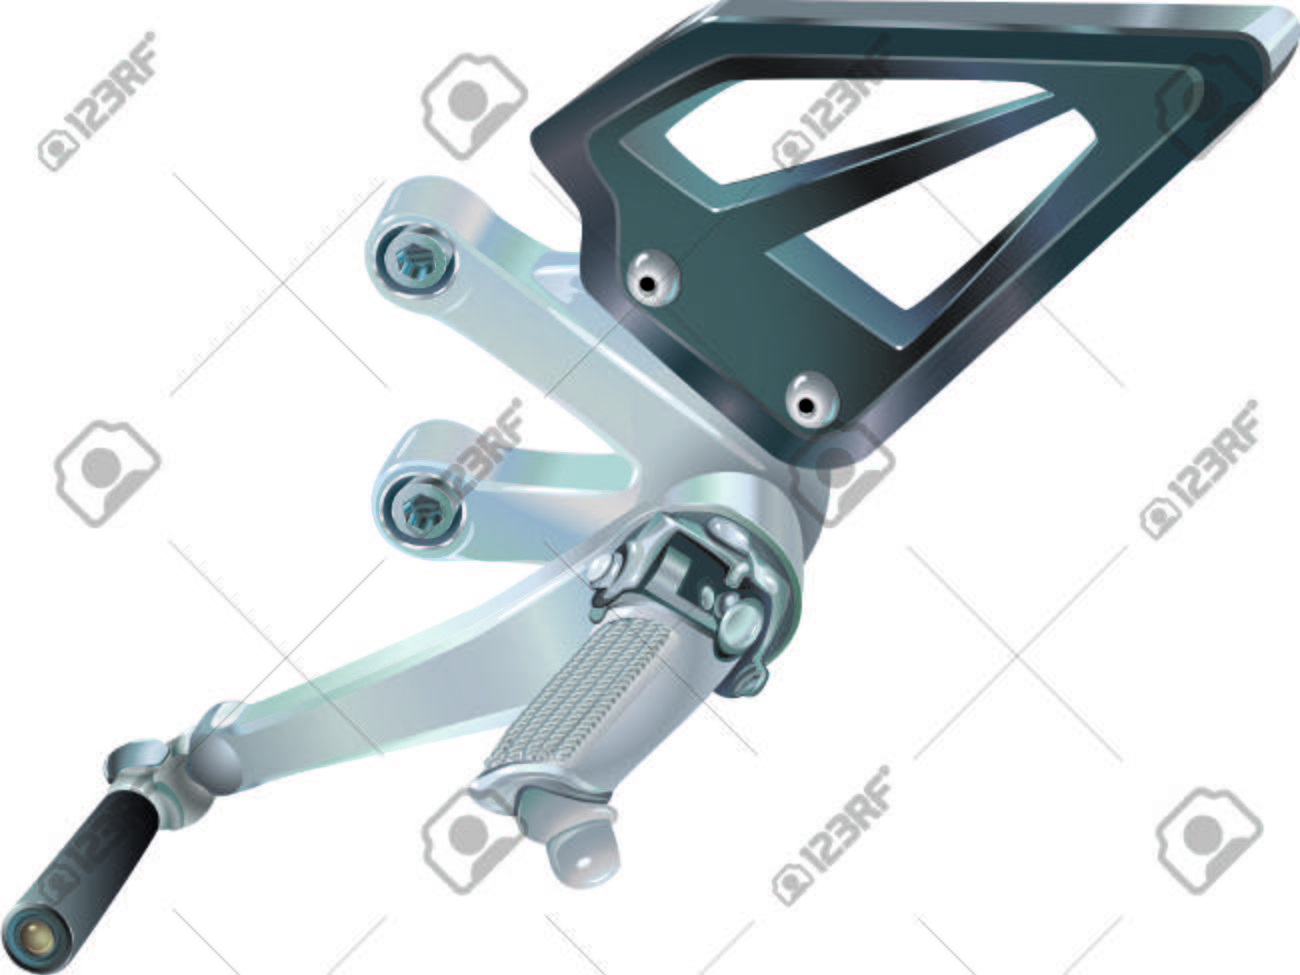 Motorcycle Gear Shifter Pedal Stock Photo Picture And Royalty Free